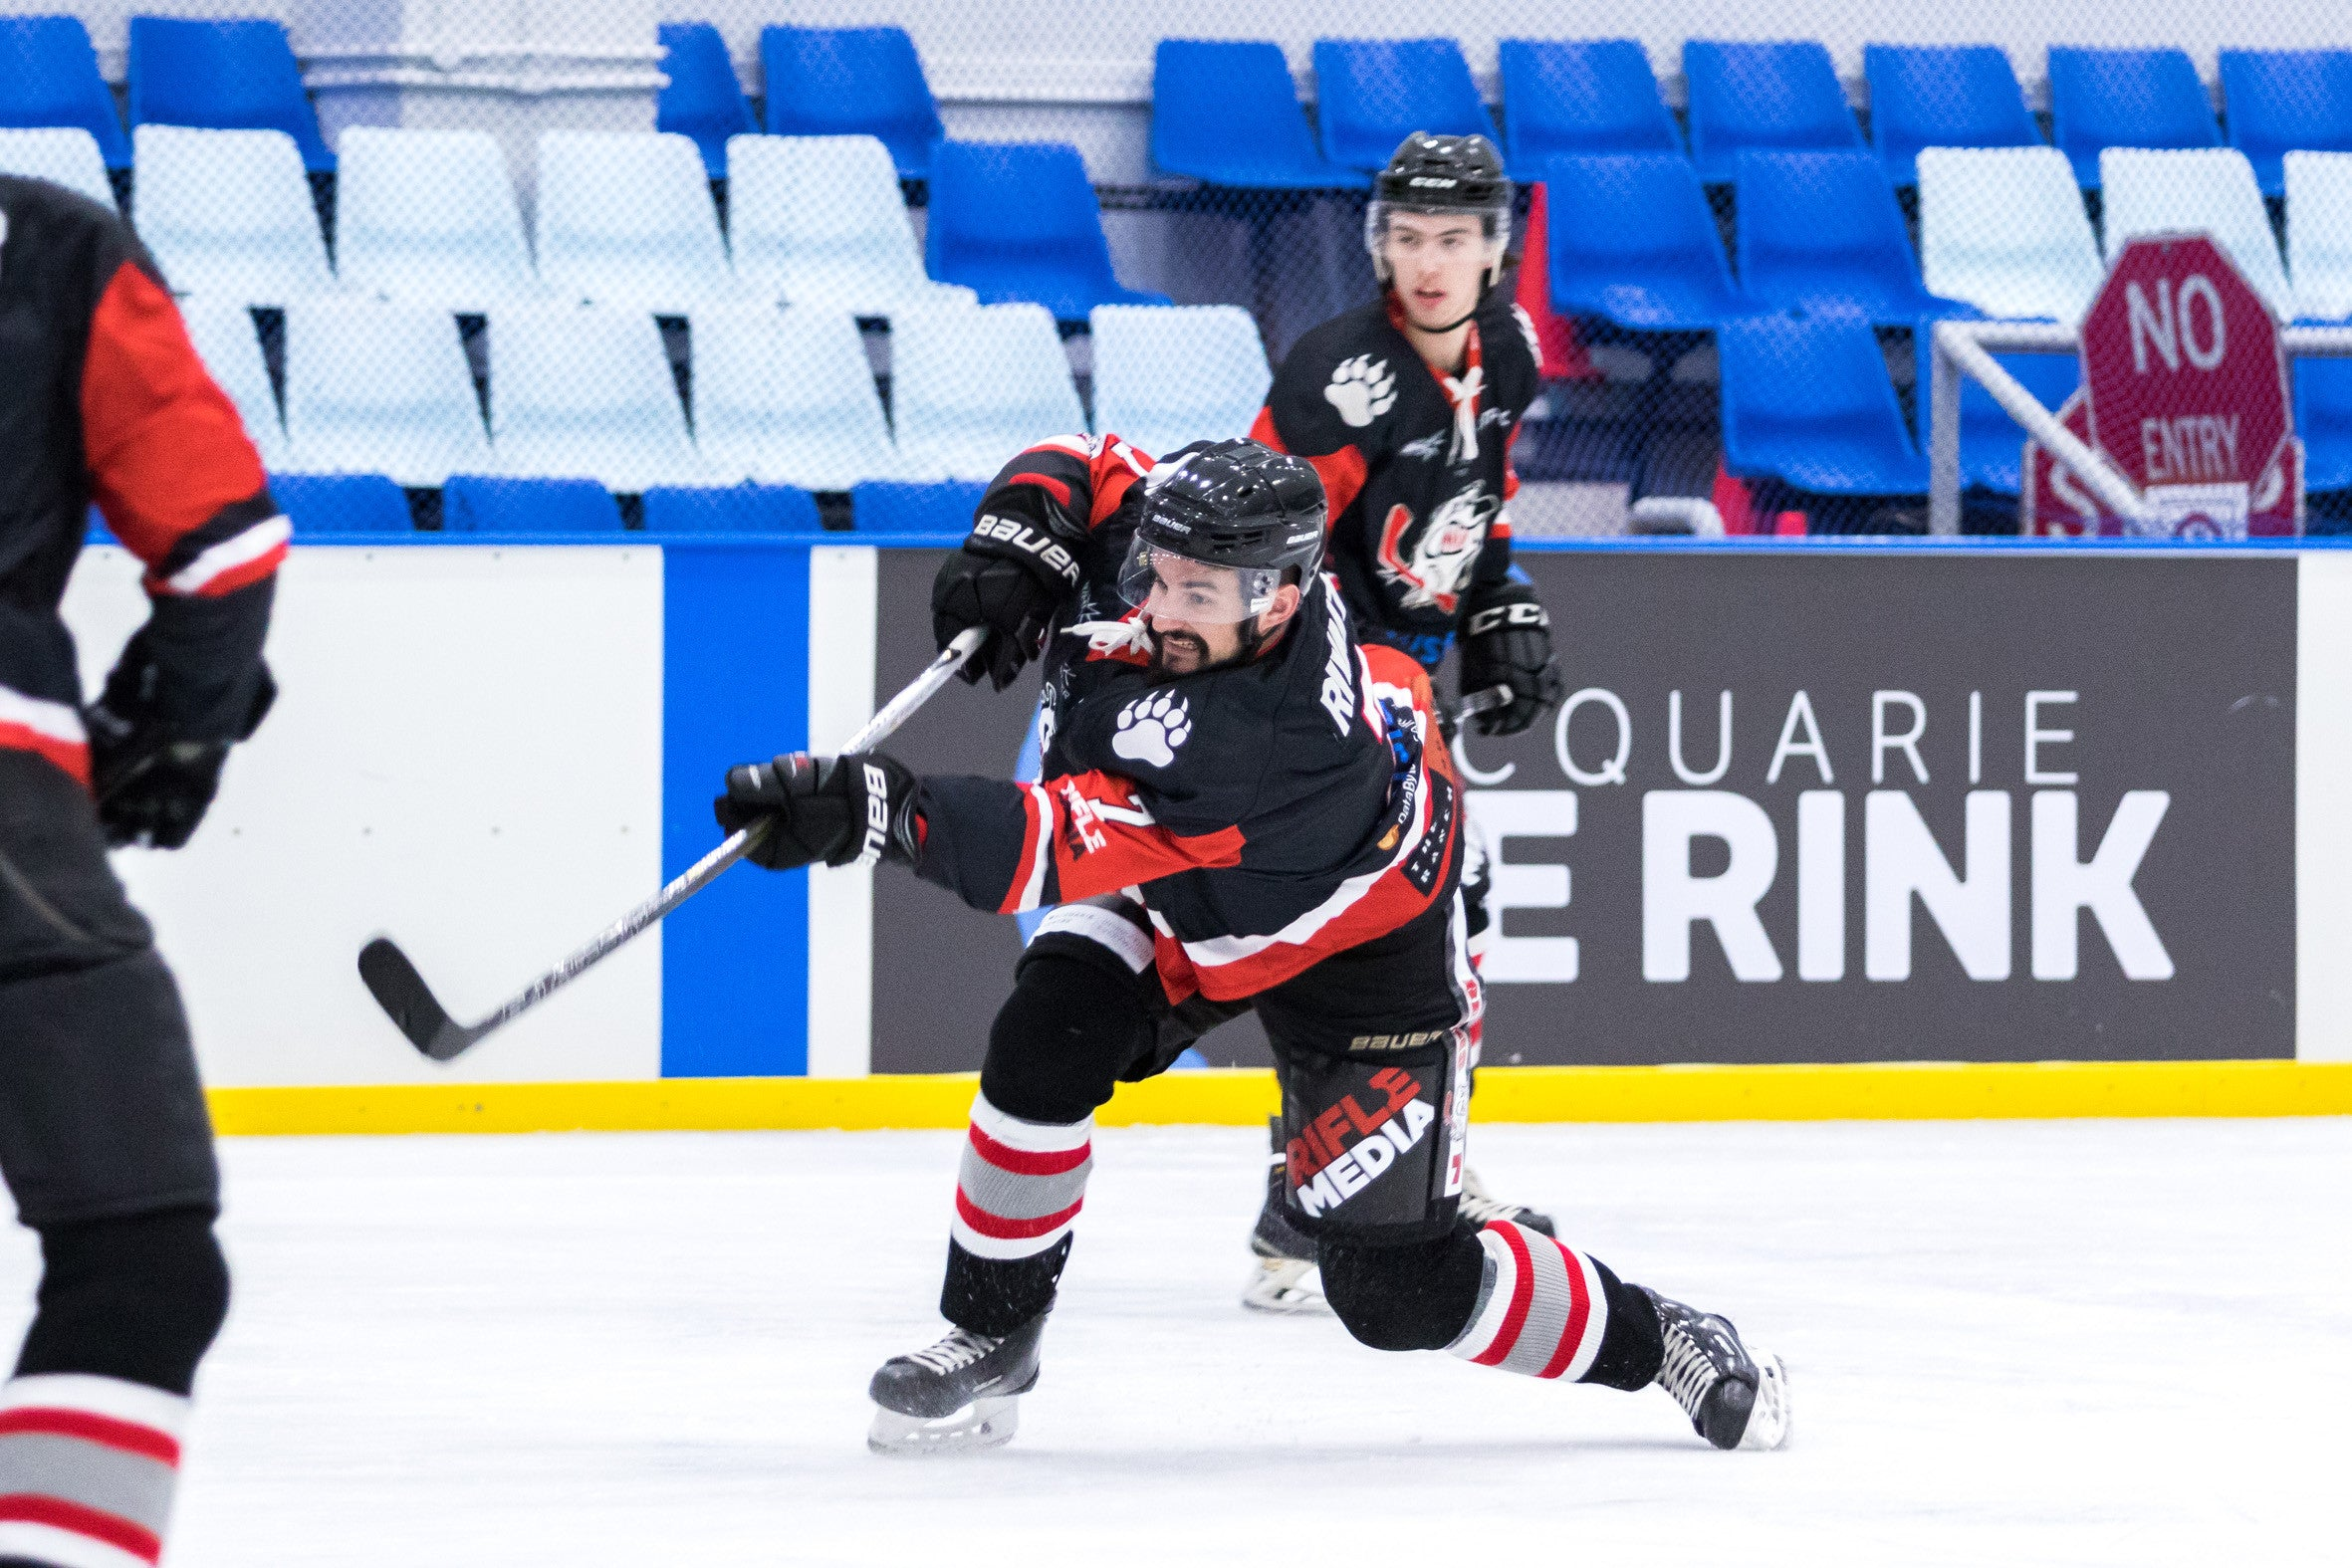 Rivait and Kimlin Named 2017 AIHL All-Stars